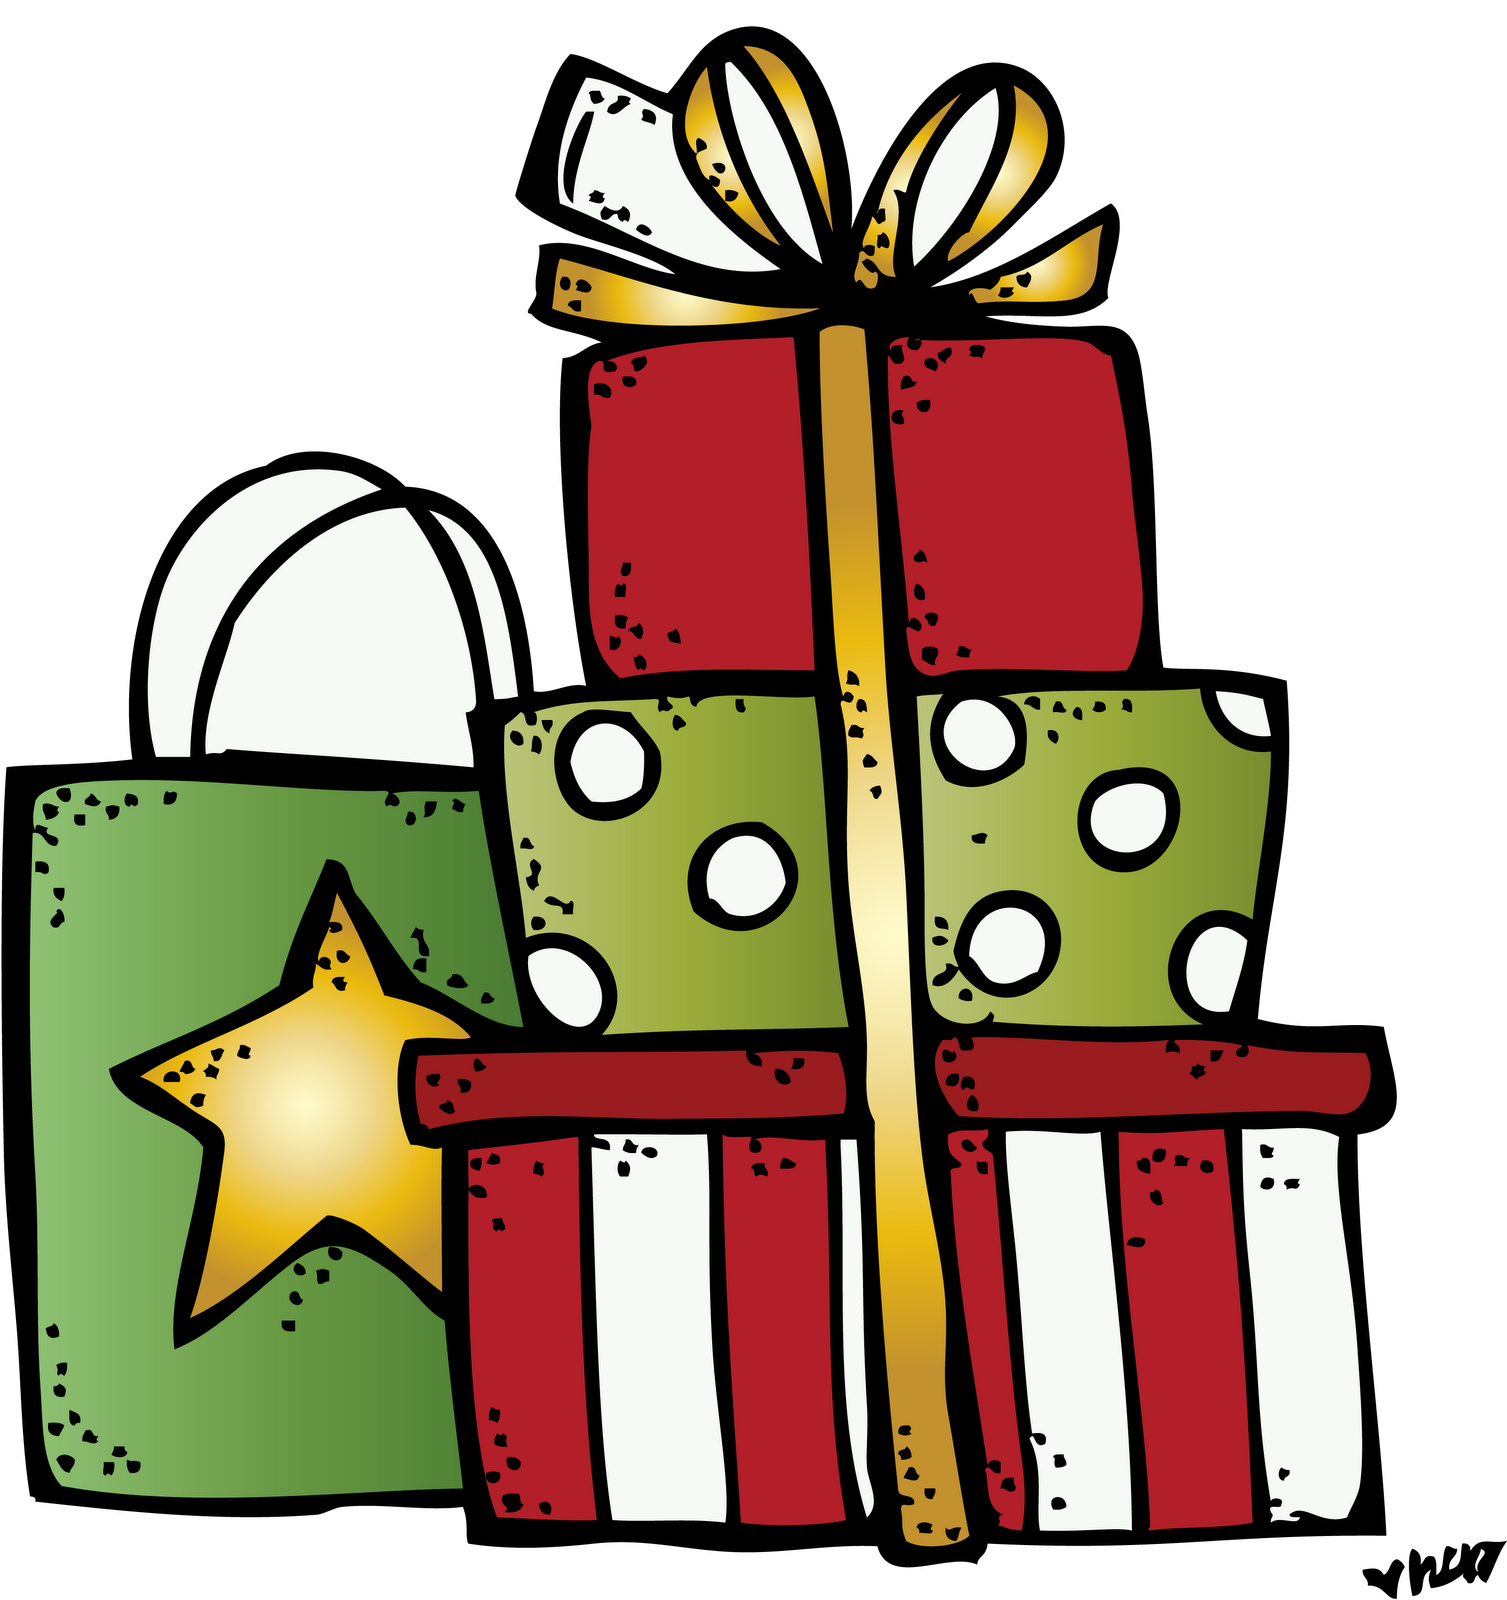 svg royalty free stock Image result for presents. Melonheadz clipart present.